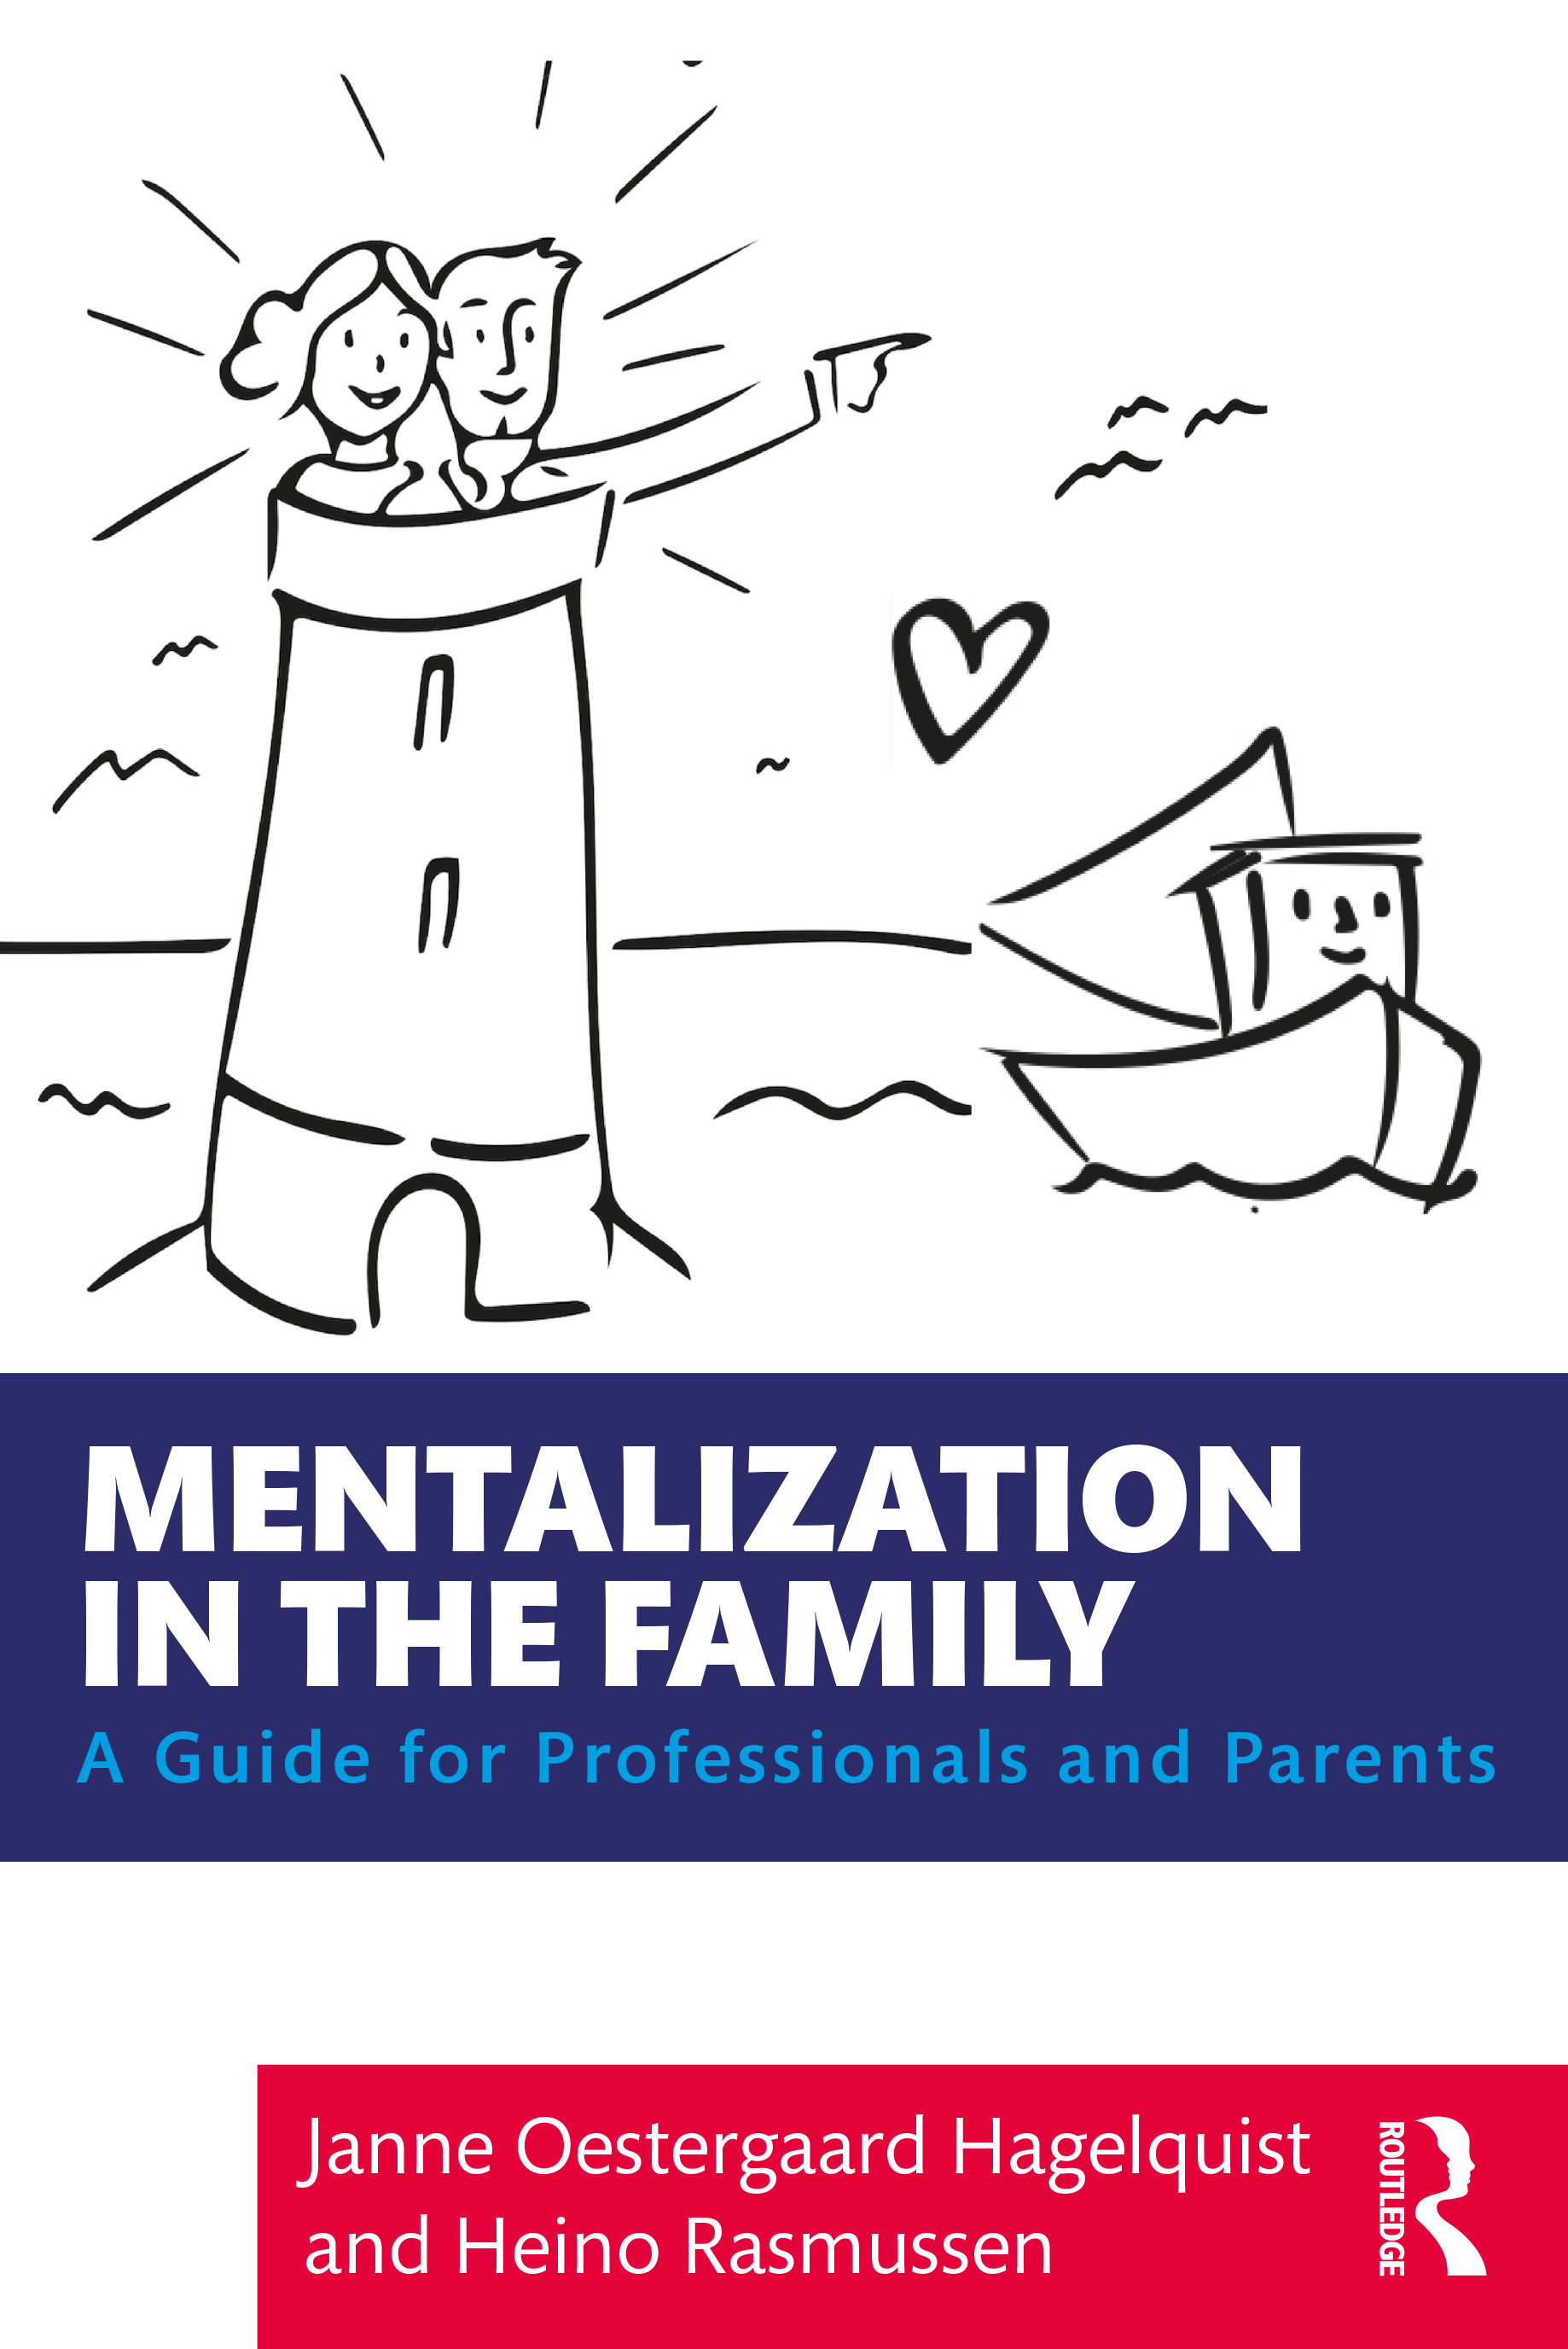 Mentalization in the Family: A Guide for Professionals and Parents book cover